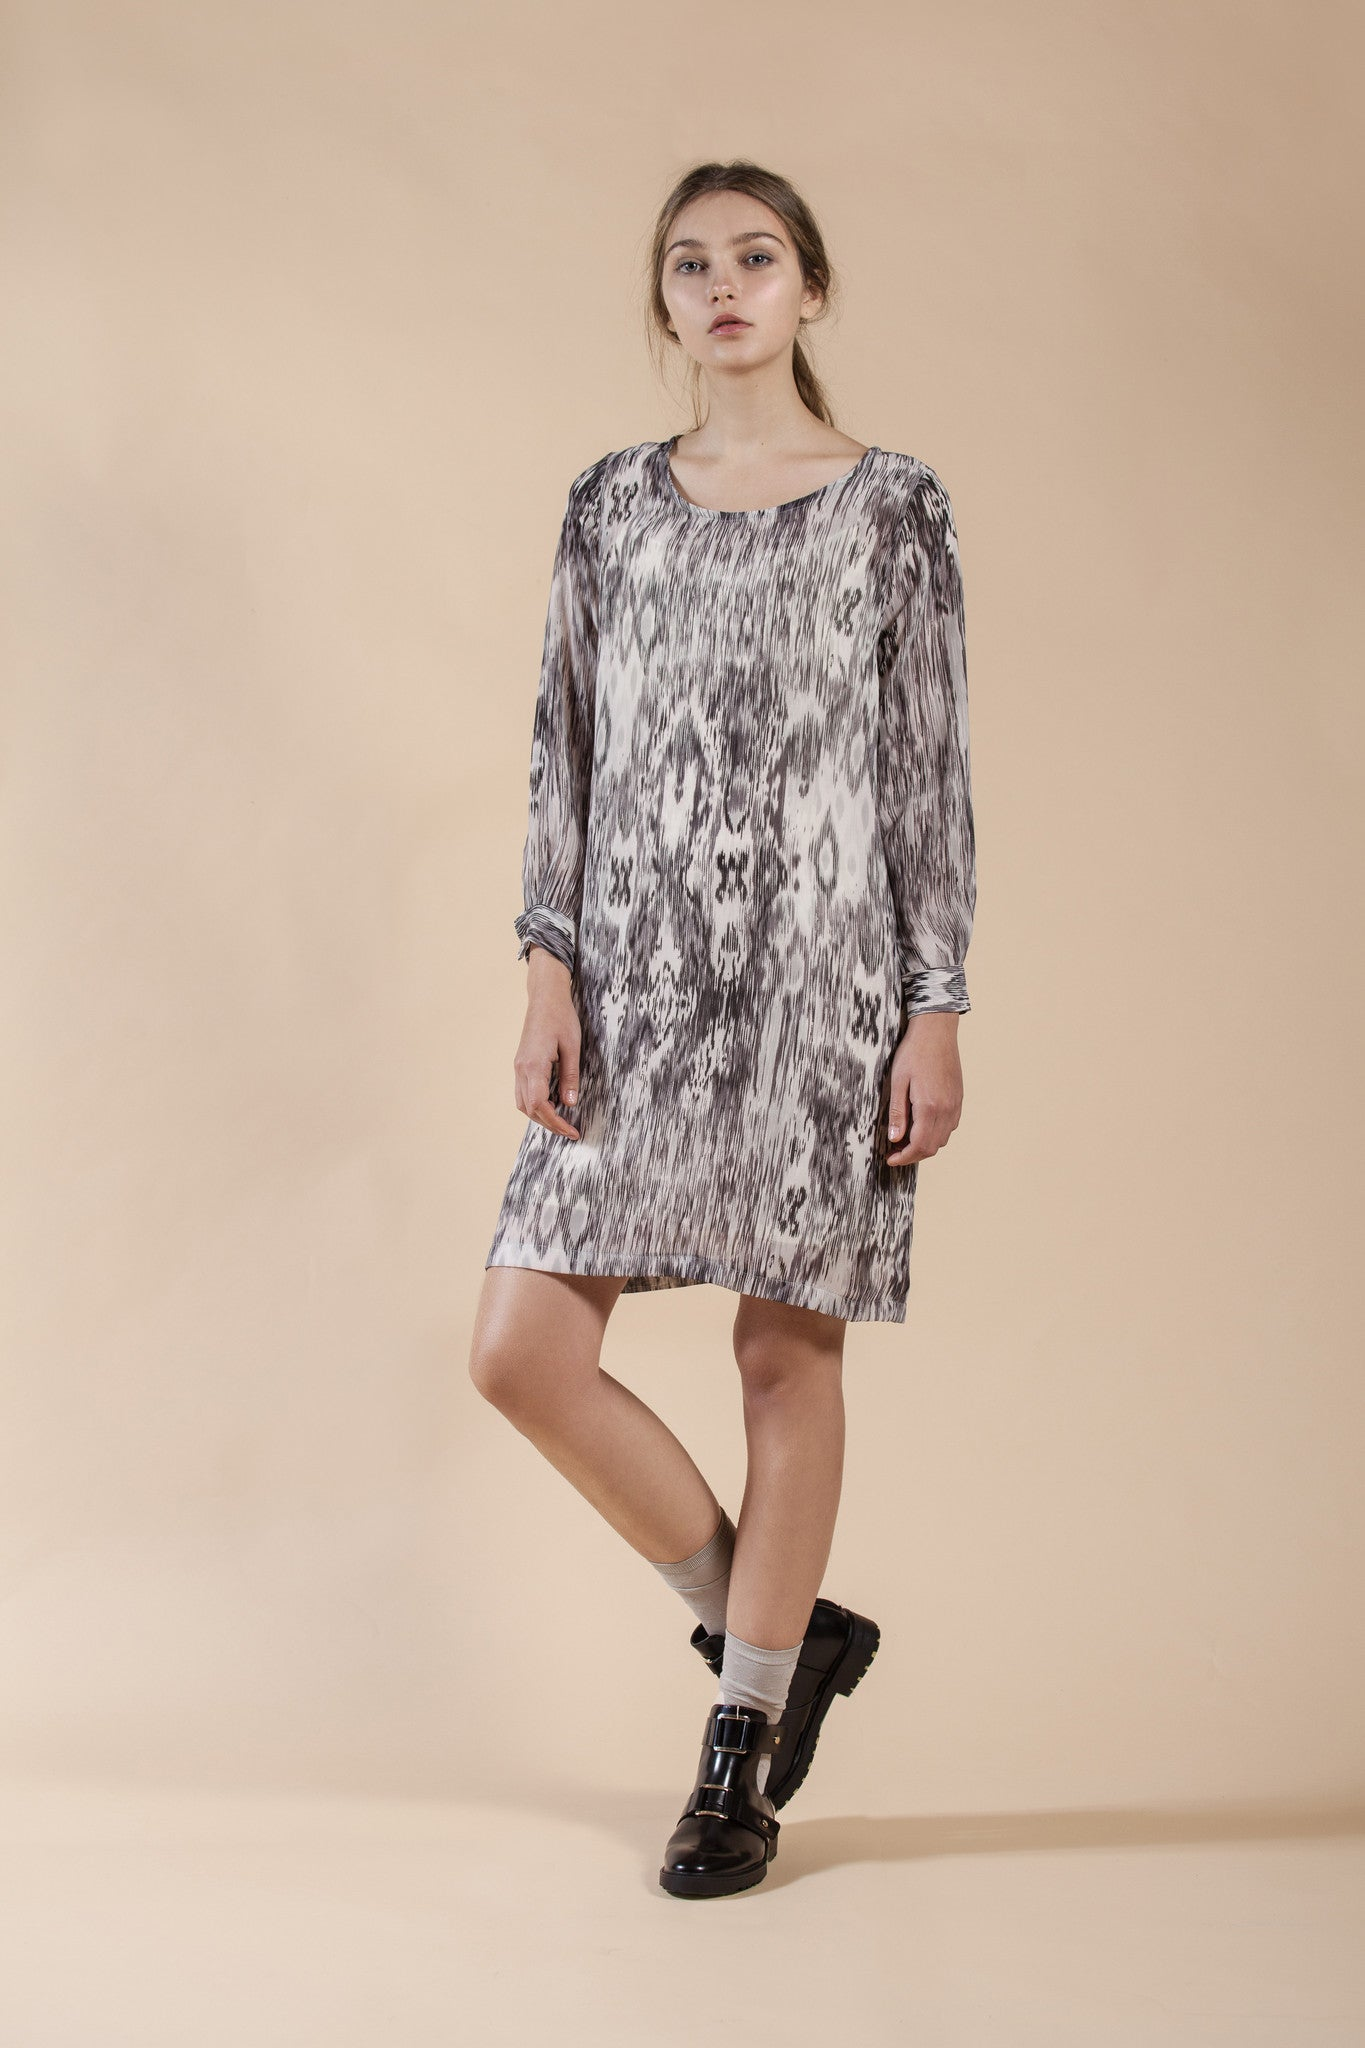 PRINTED SHEER DRESS - WIND